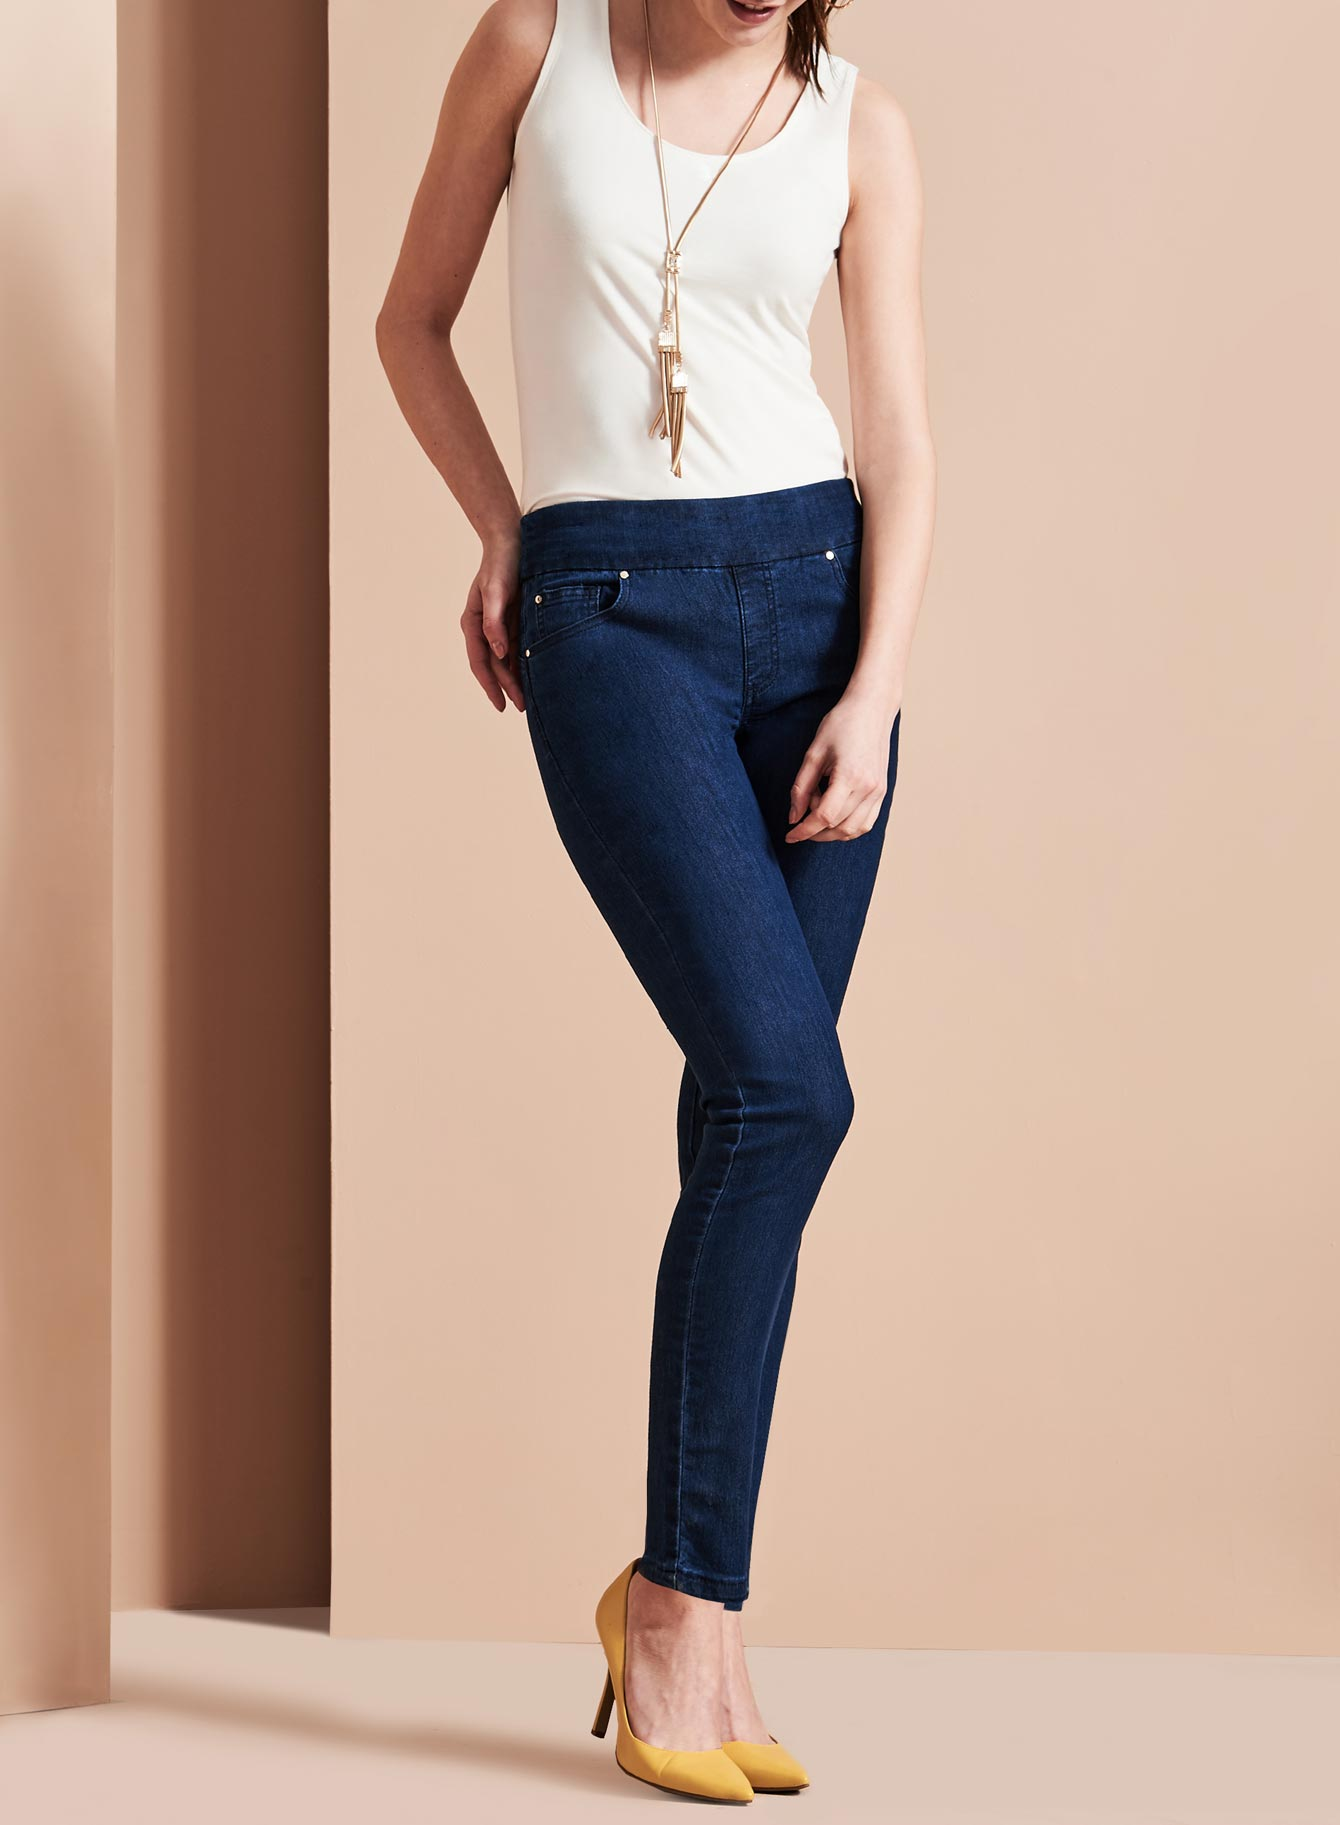 Simon Chang Slim Leg Jeans